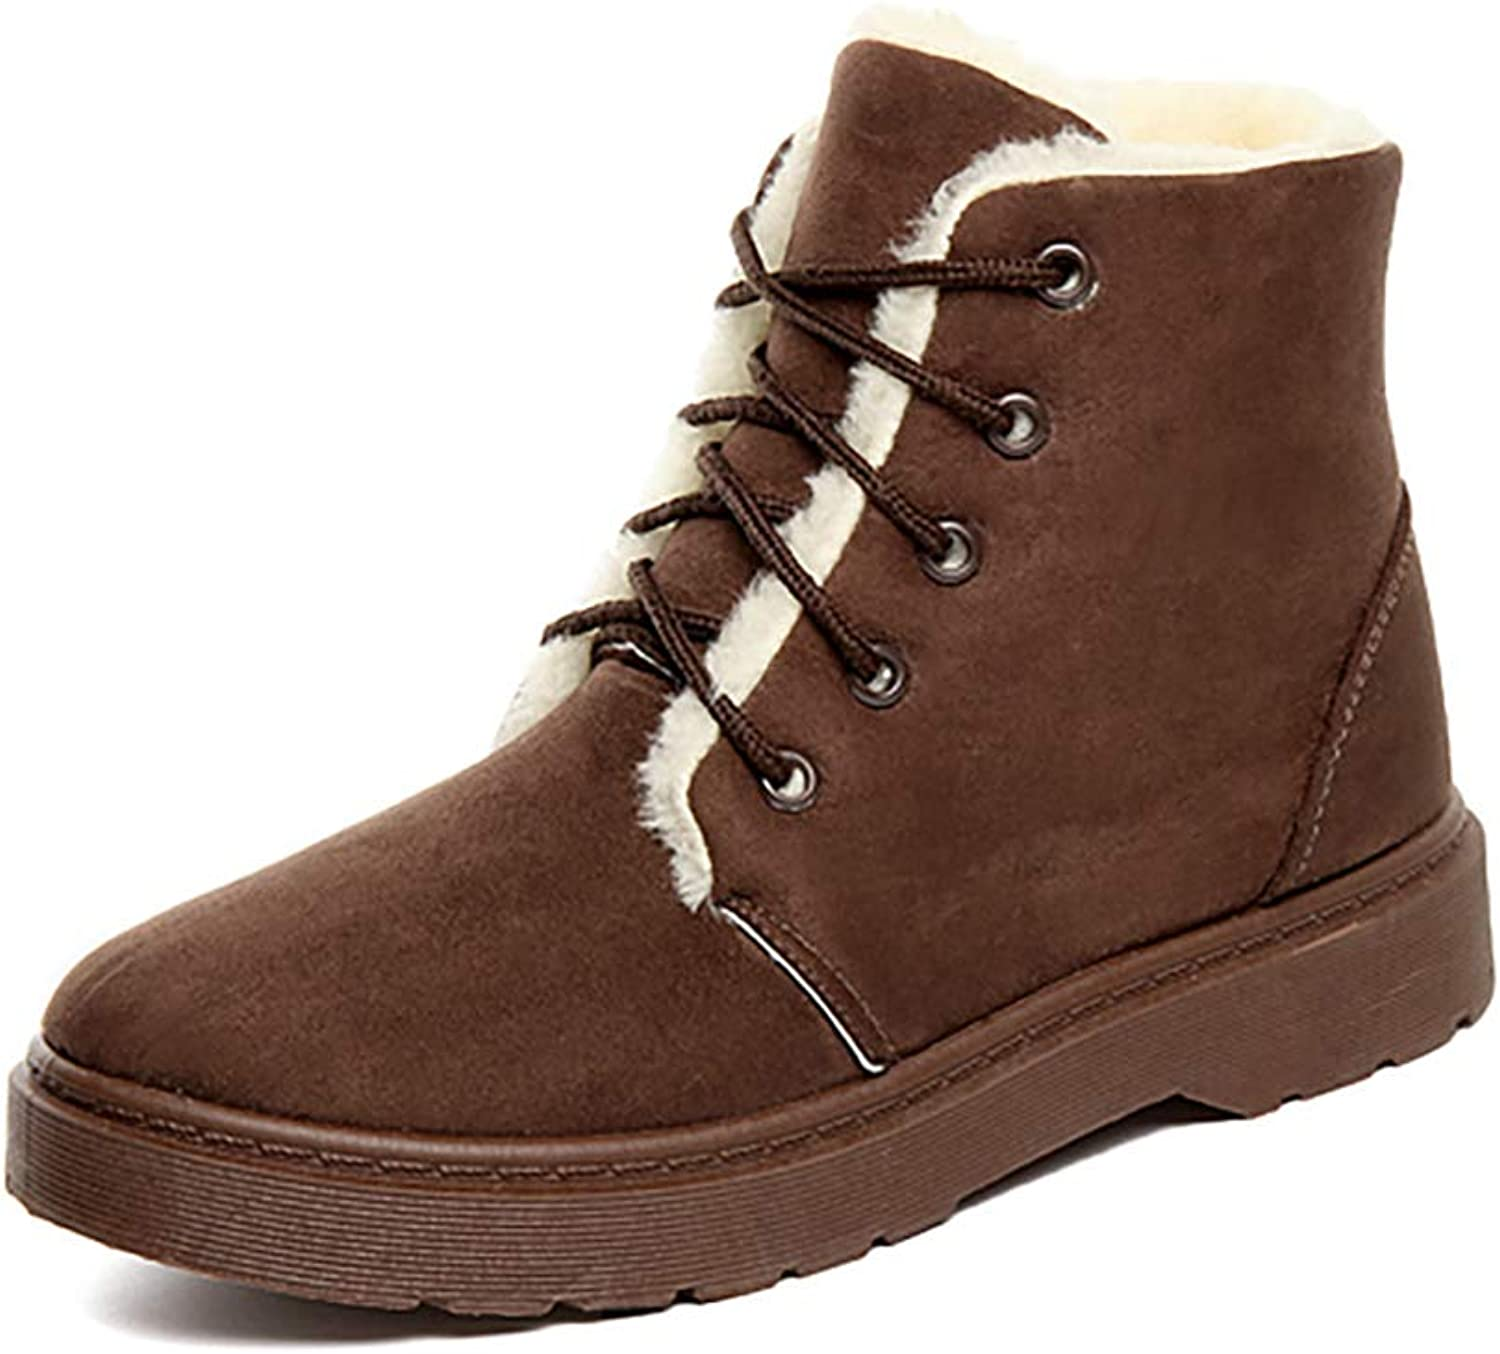 T-JULY Ladies Snow Boots Female Boots Women Autumn Winter Girls shoes Faux Suede Keep Warm Non Slip Flats Plush Insole